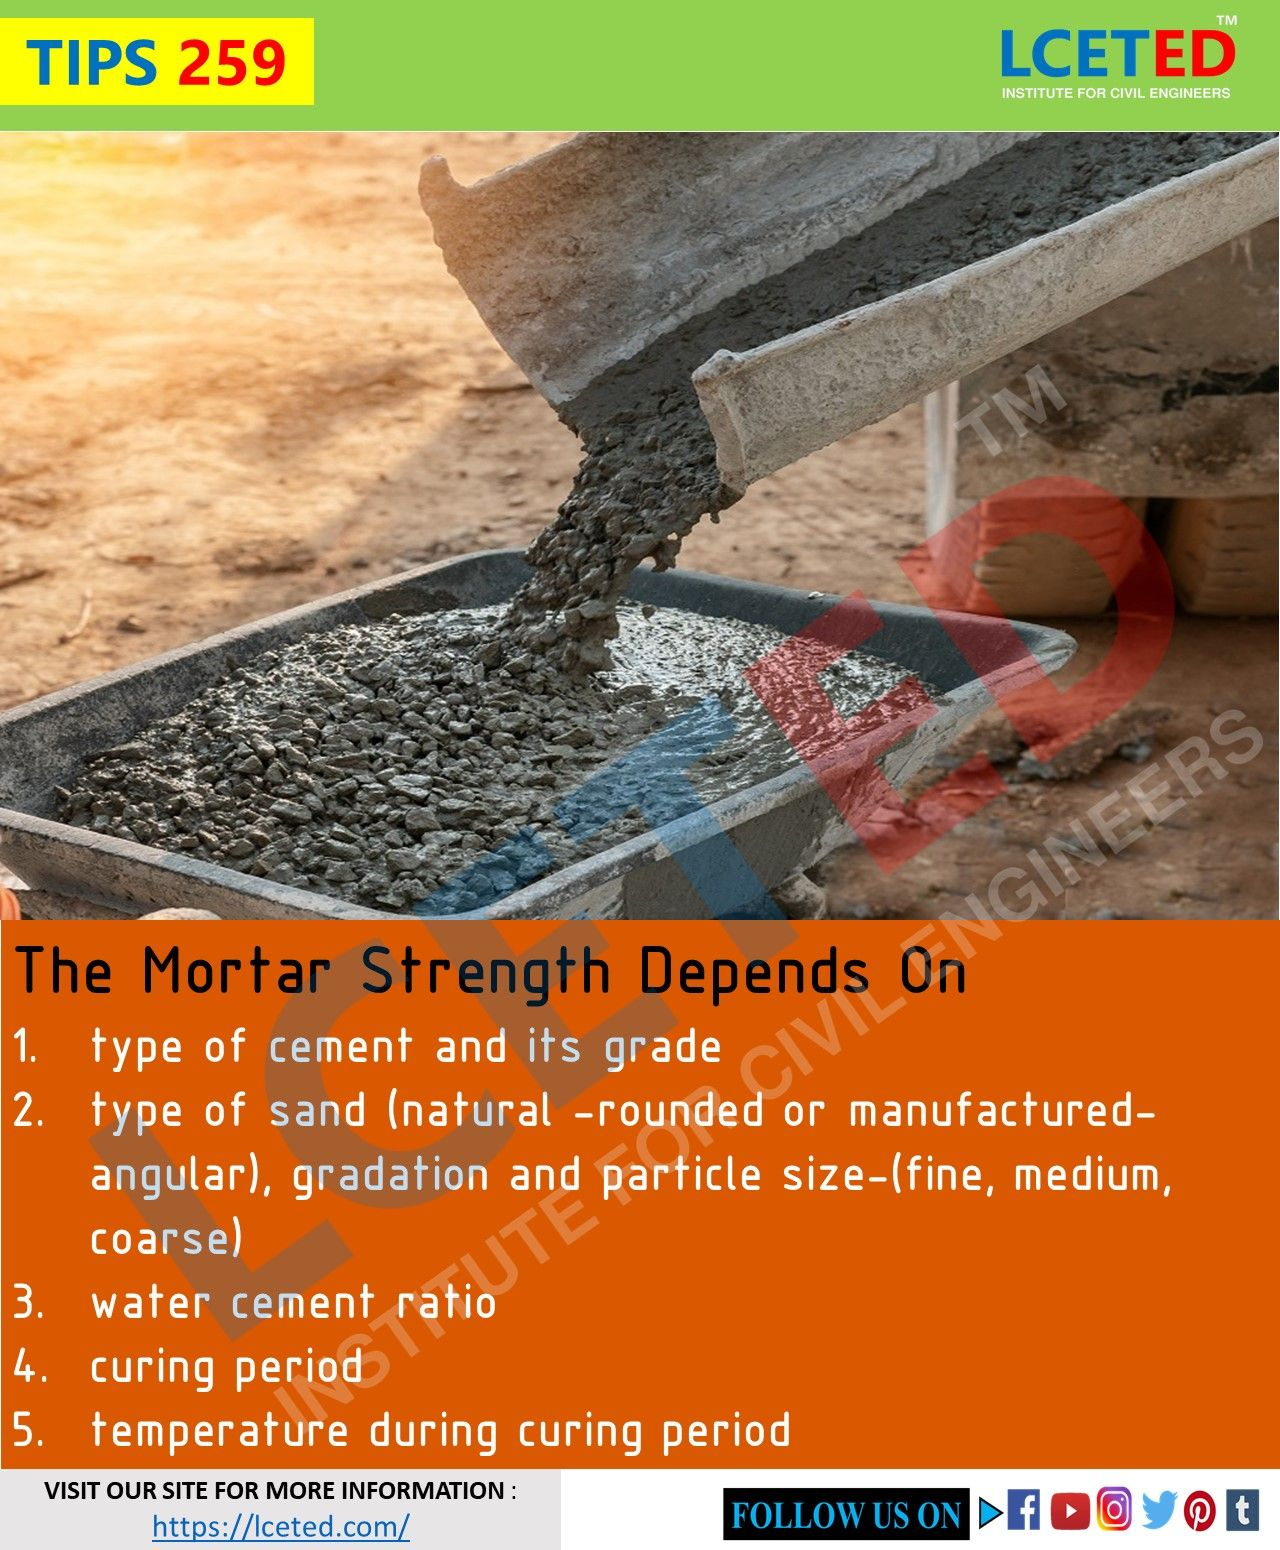 Tips 259 Mortar Strength Depends On Civil Engineering Civil Engineering Books Water Cement Ratio